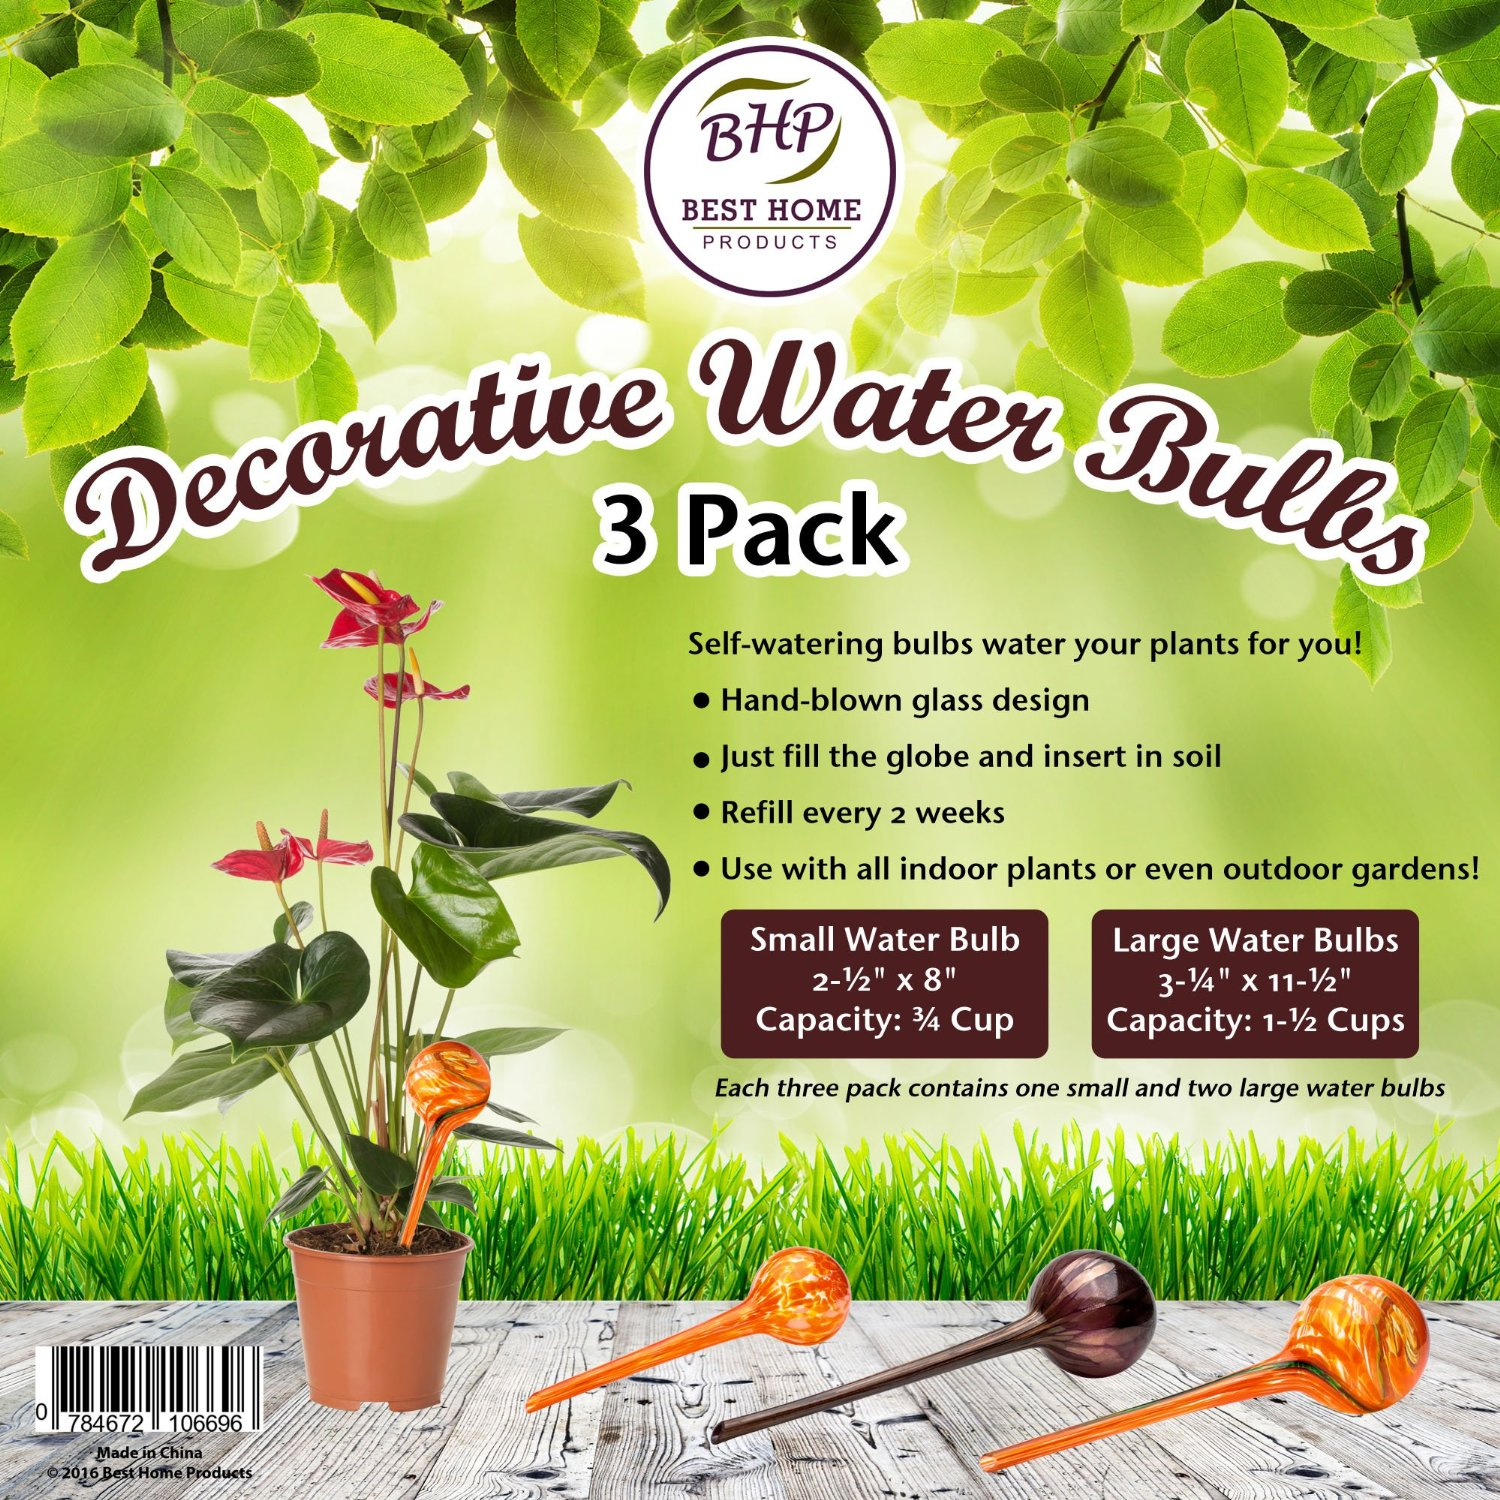 how to set up a self watering system for plants